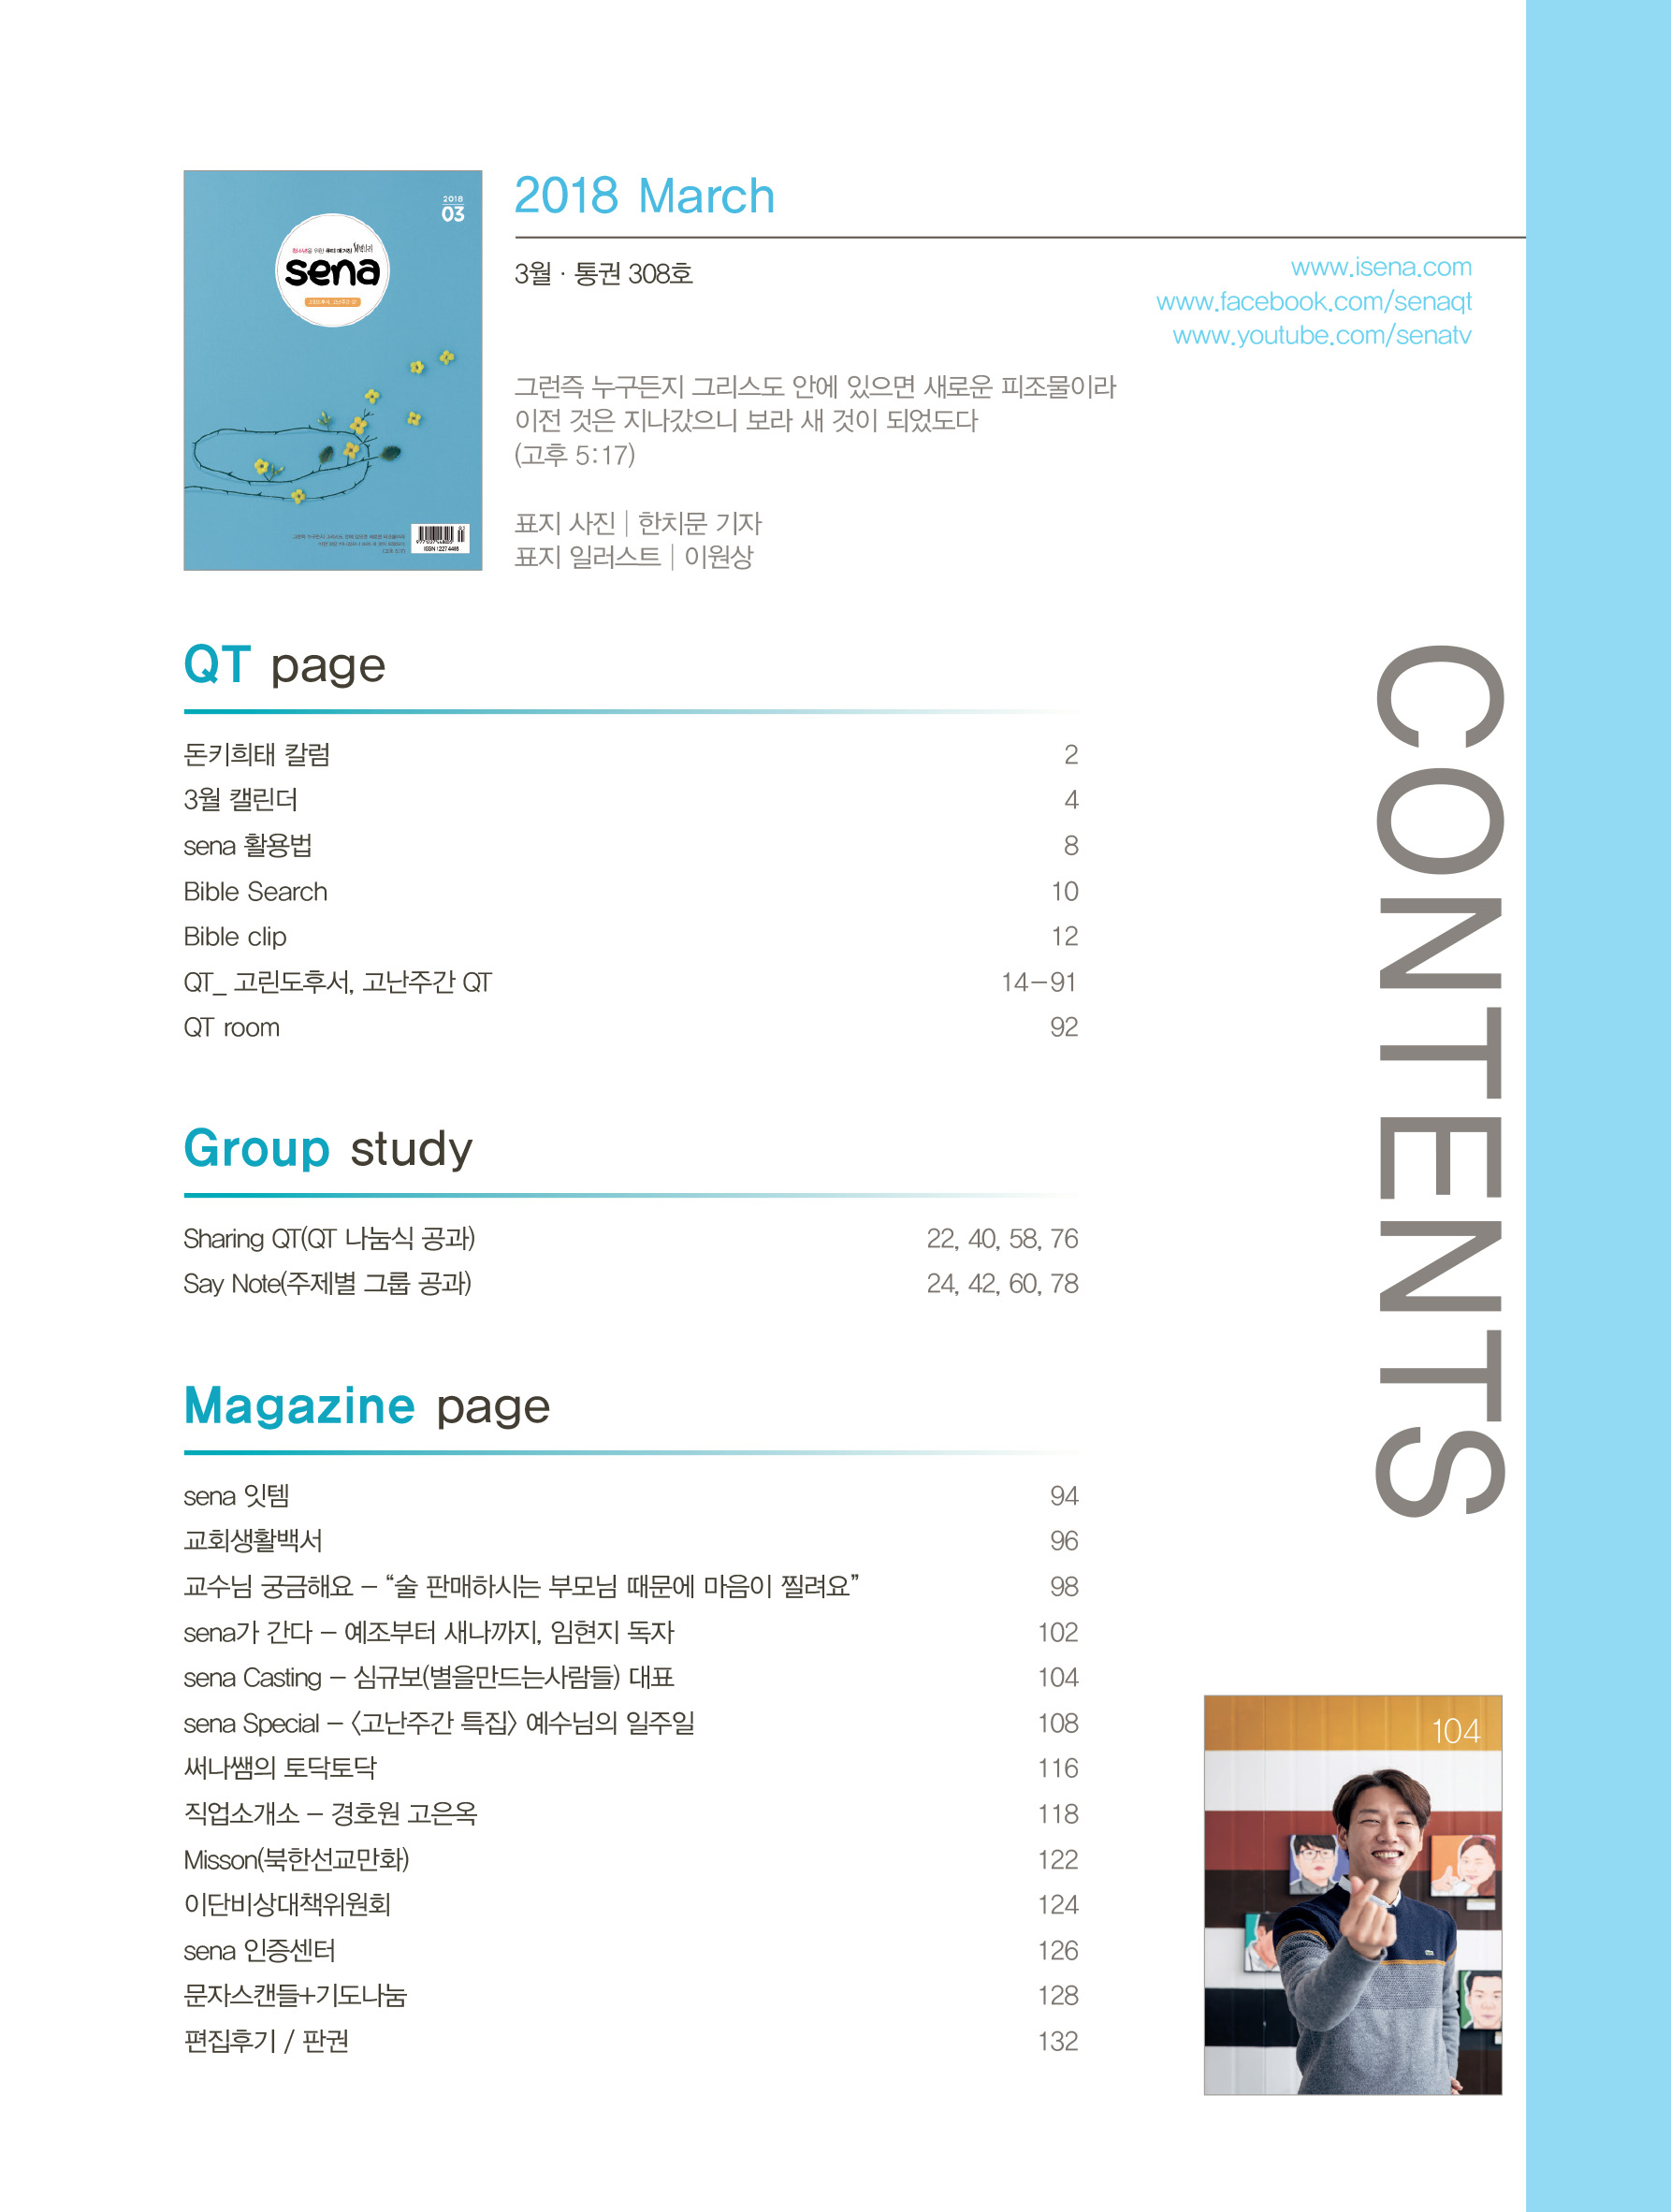 201803 contents